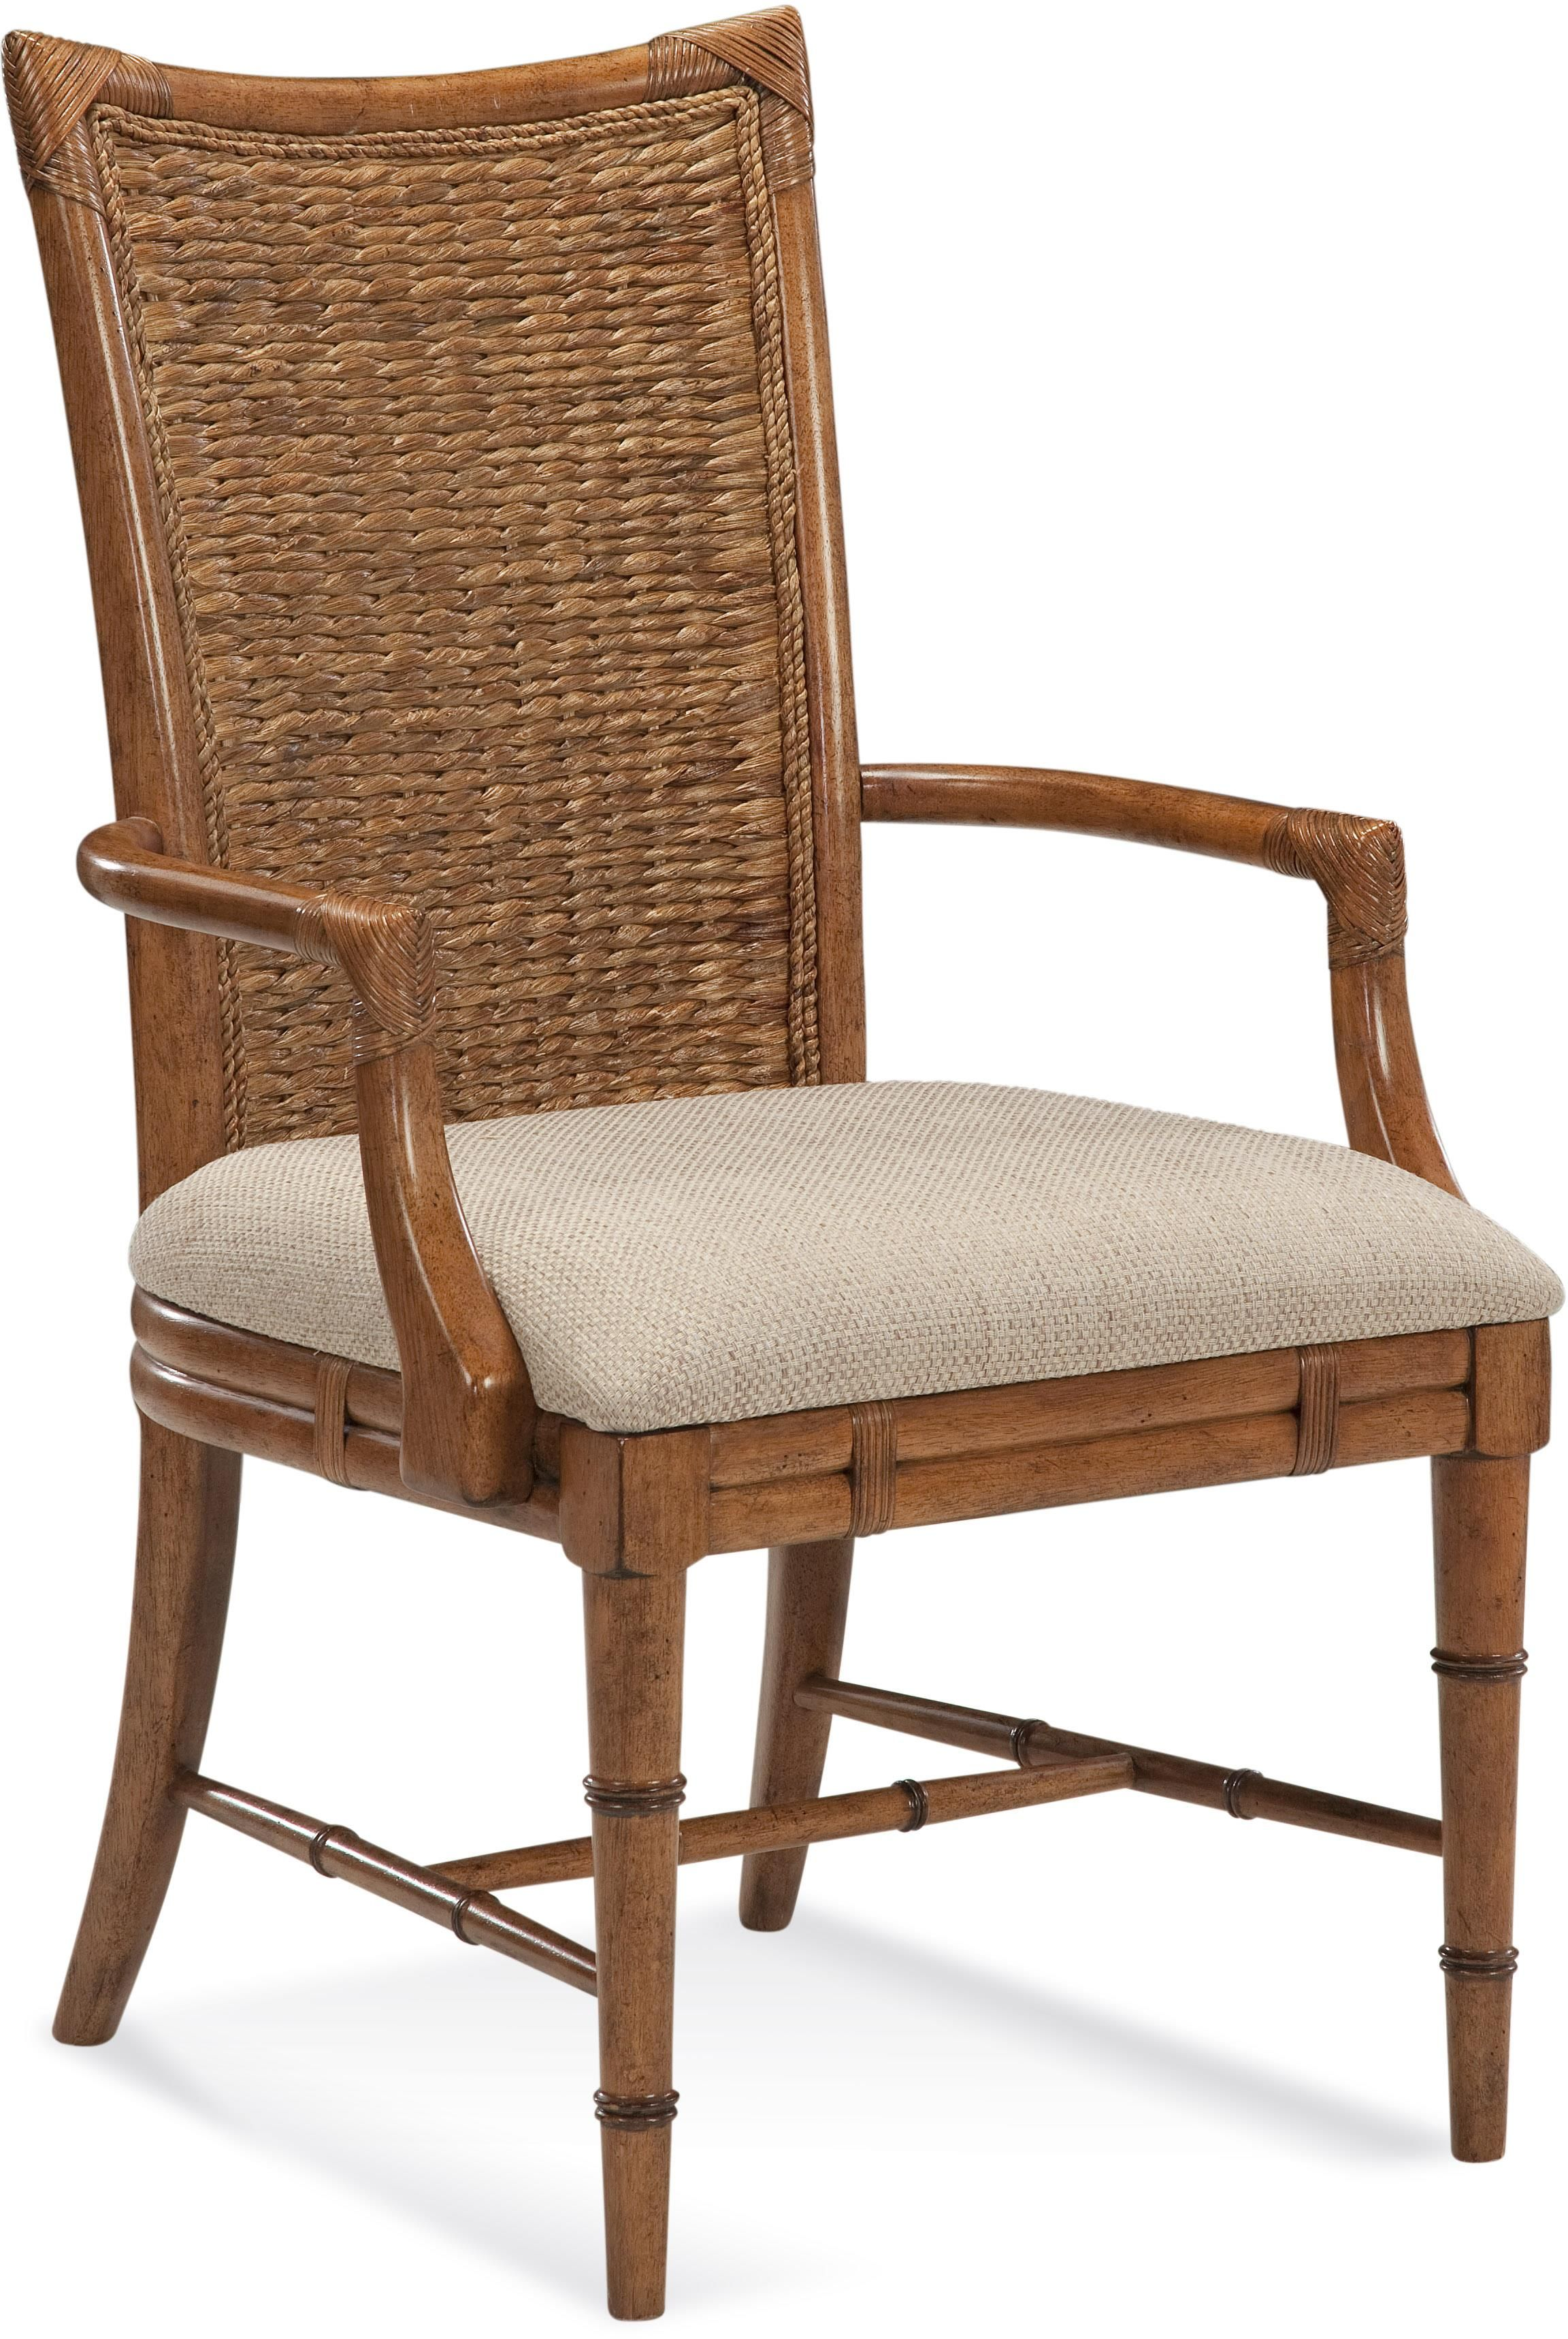 Paradise Bay Arm Chair By Lacquer Craft Usa At Homeworld Furniture